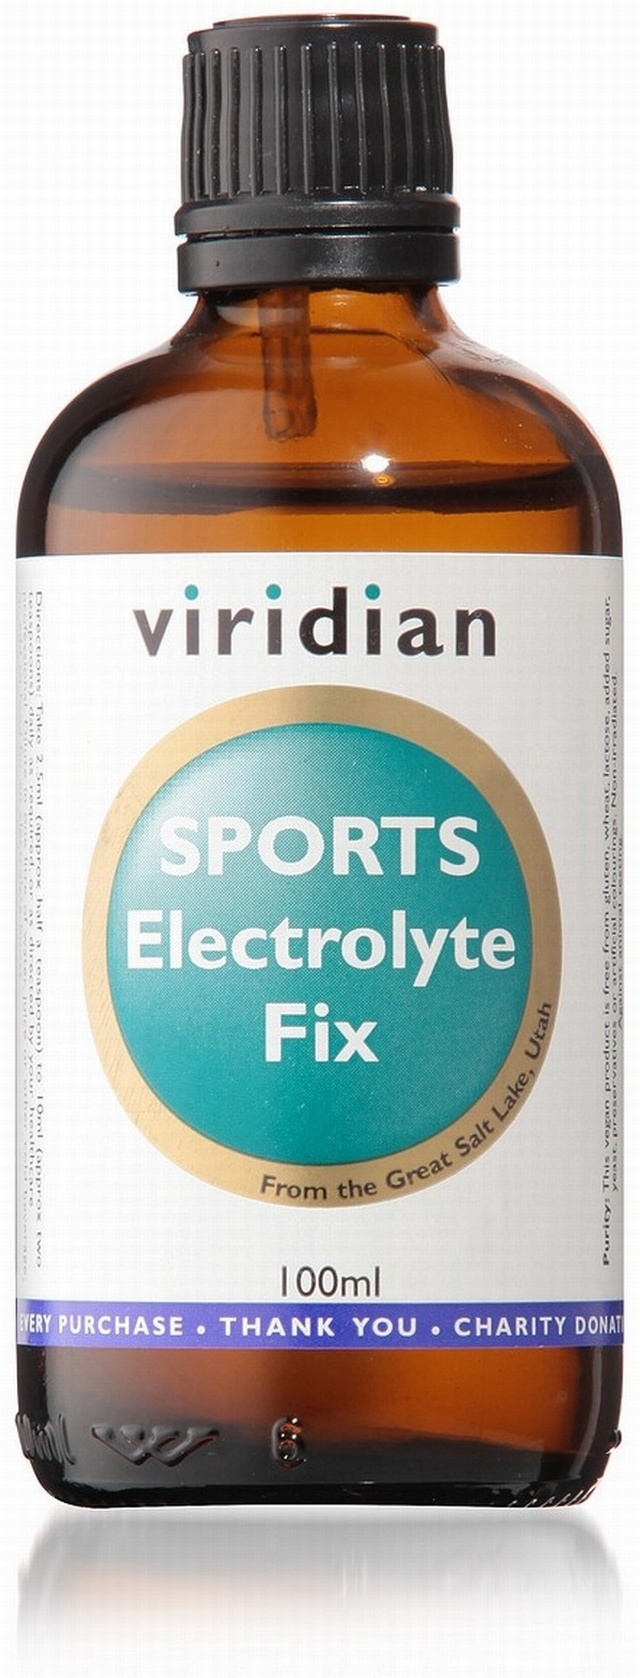 Viridian Sports Electrolyte Fix Liquid 100ml